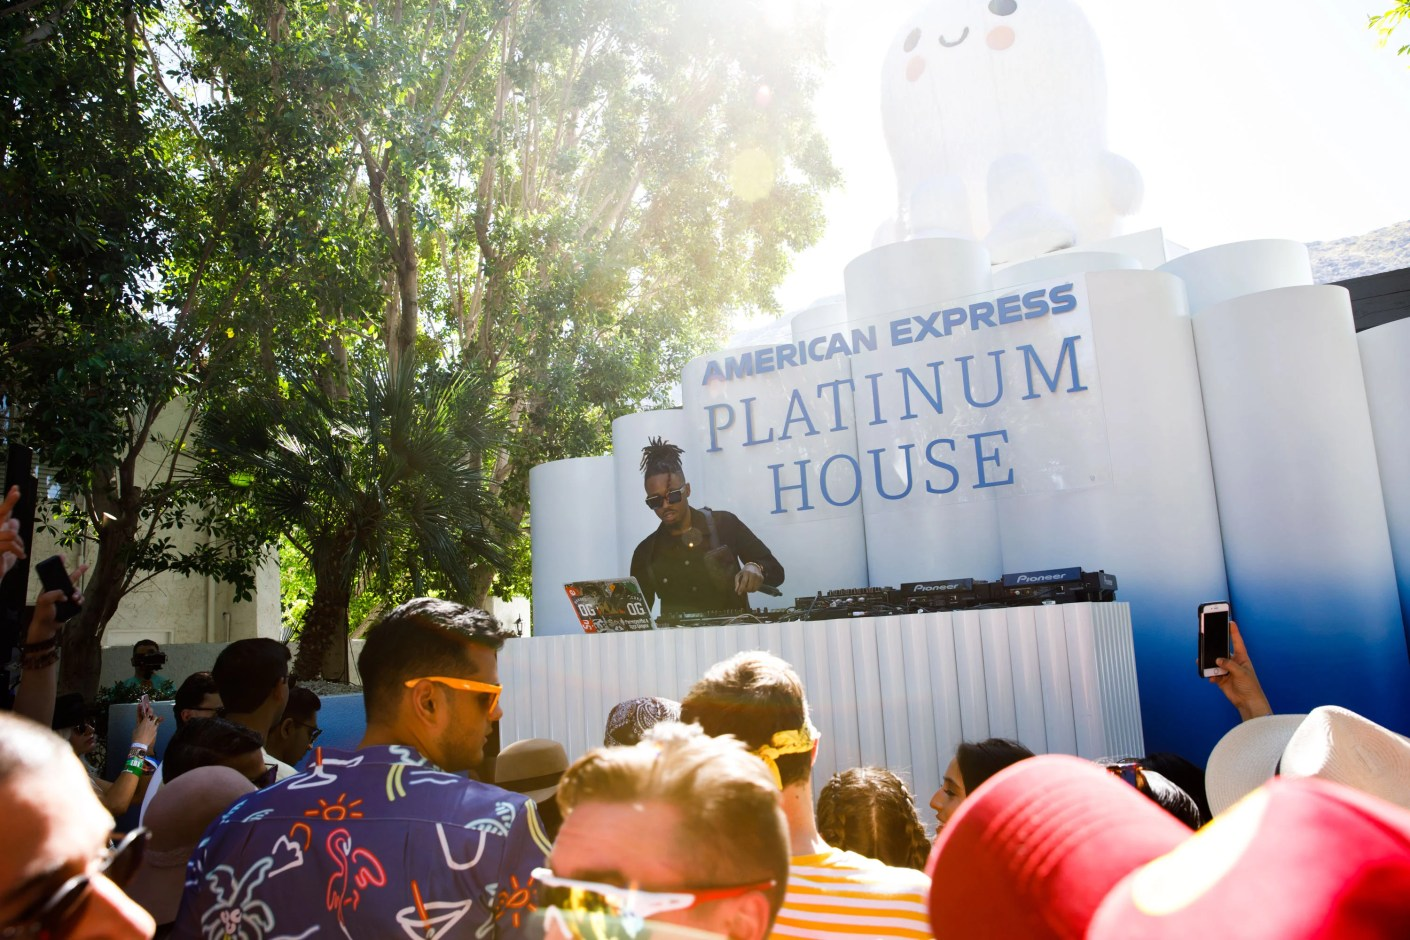 Producer and DJ Metro Boomin performs at the American Express Platinum House during Coachella weekend. (Photo by Patrick T. Fallon/The Points Guy)